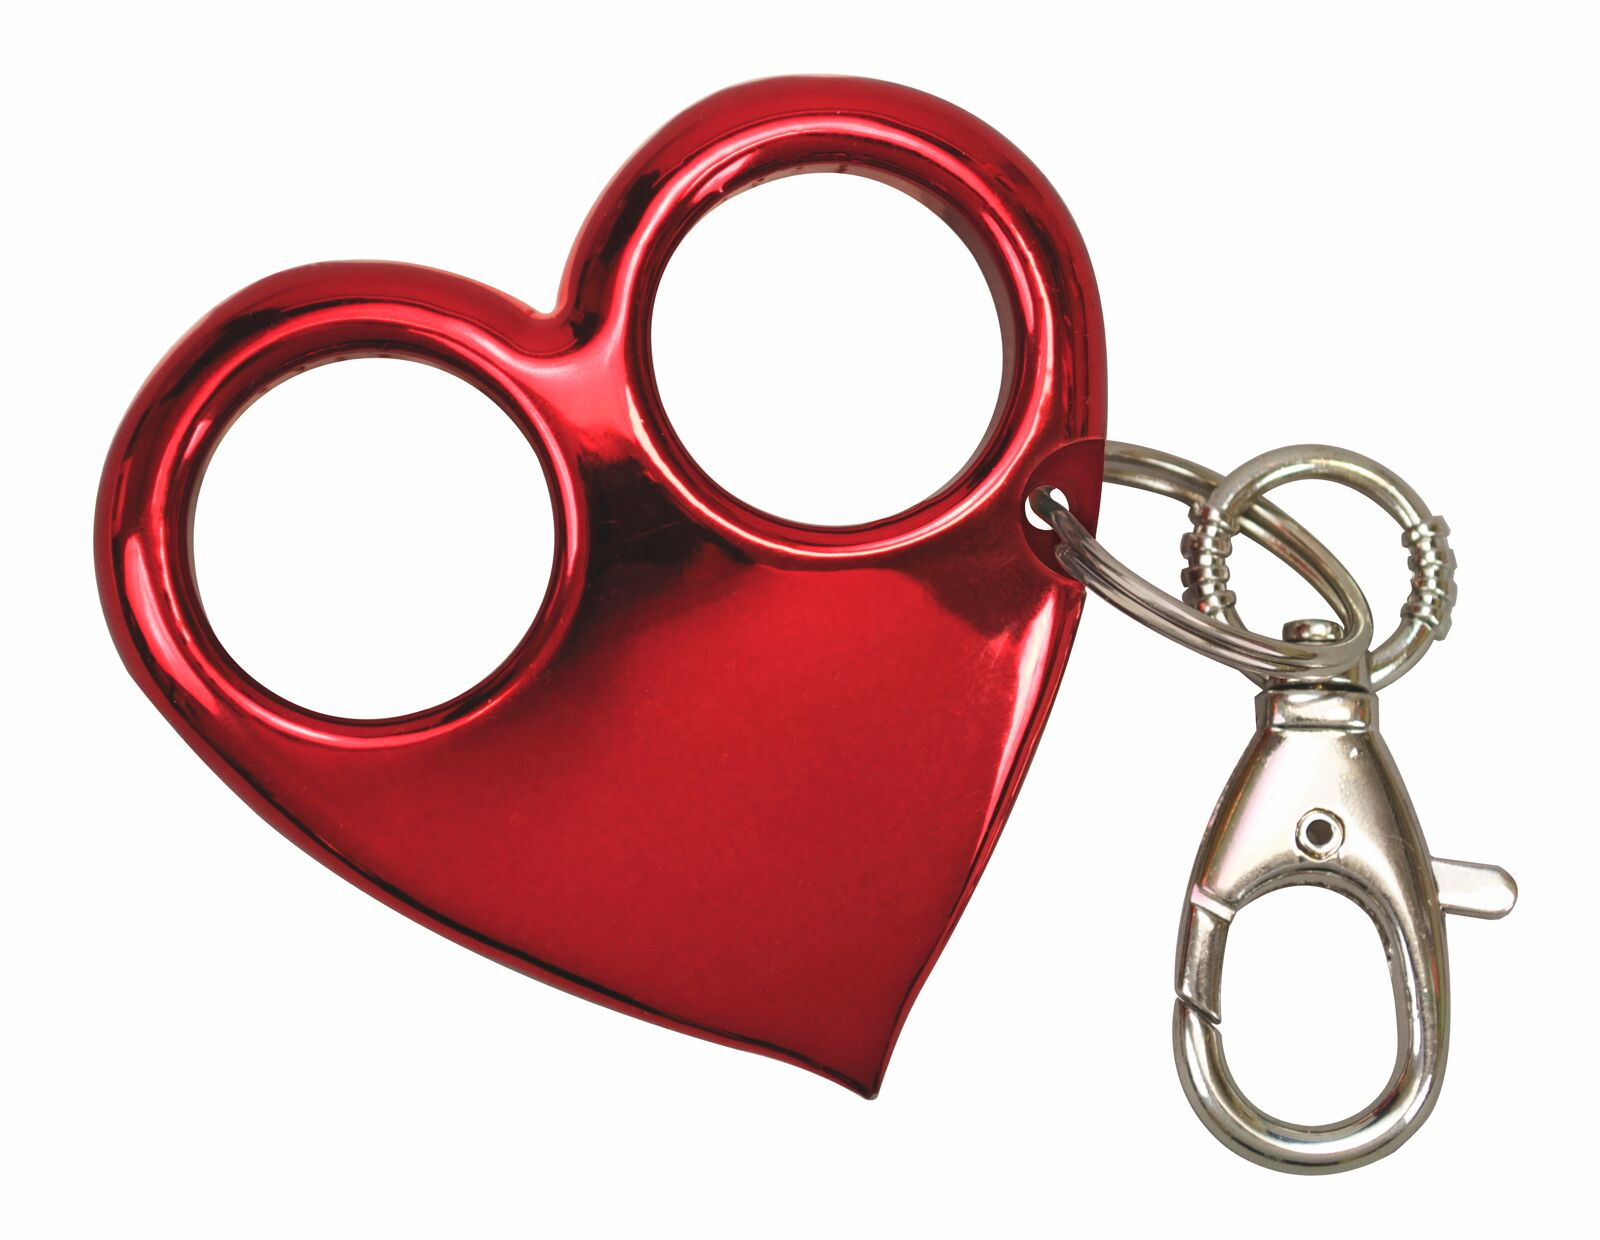 Heart Attack Self Defense Keychain Best Stun Gun